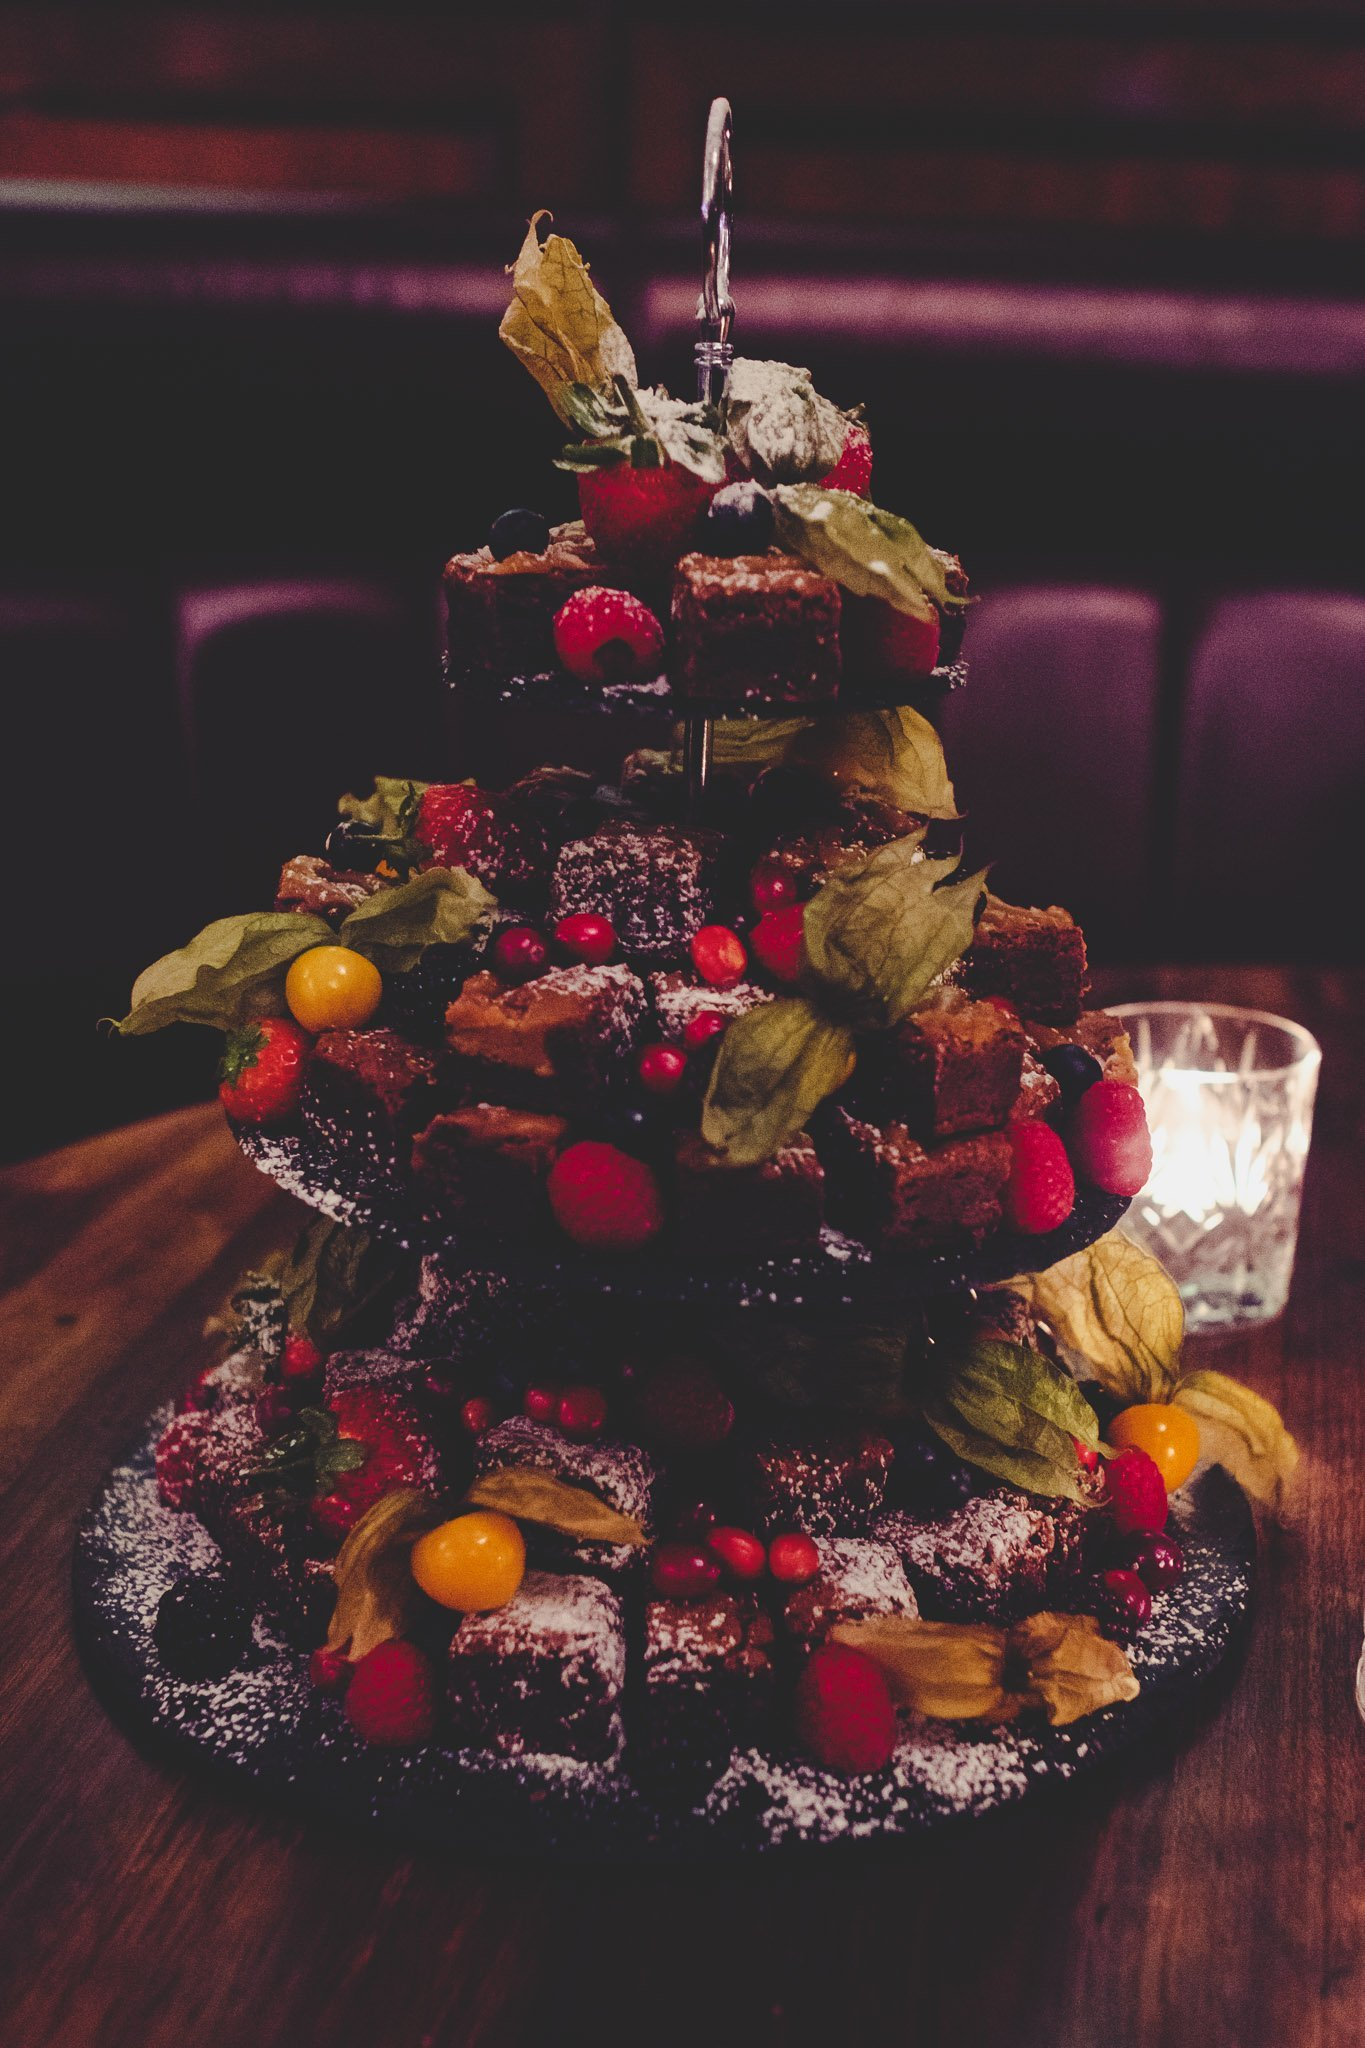 Frosted Wedding cake at Hawksmoor Steakhouse in Guildhall London